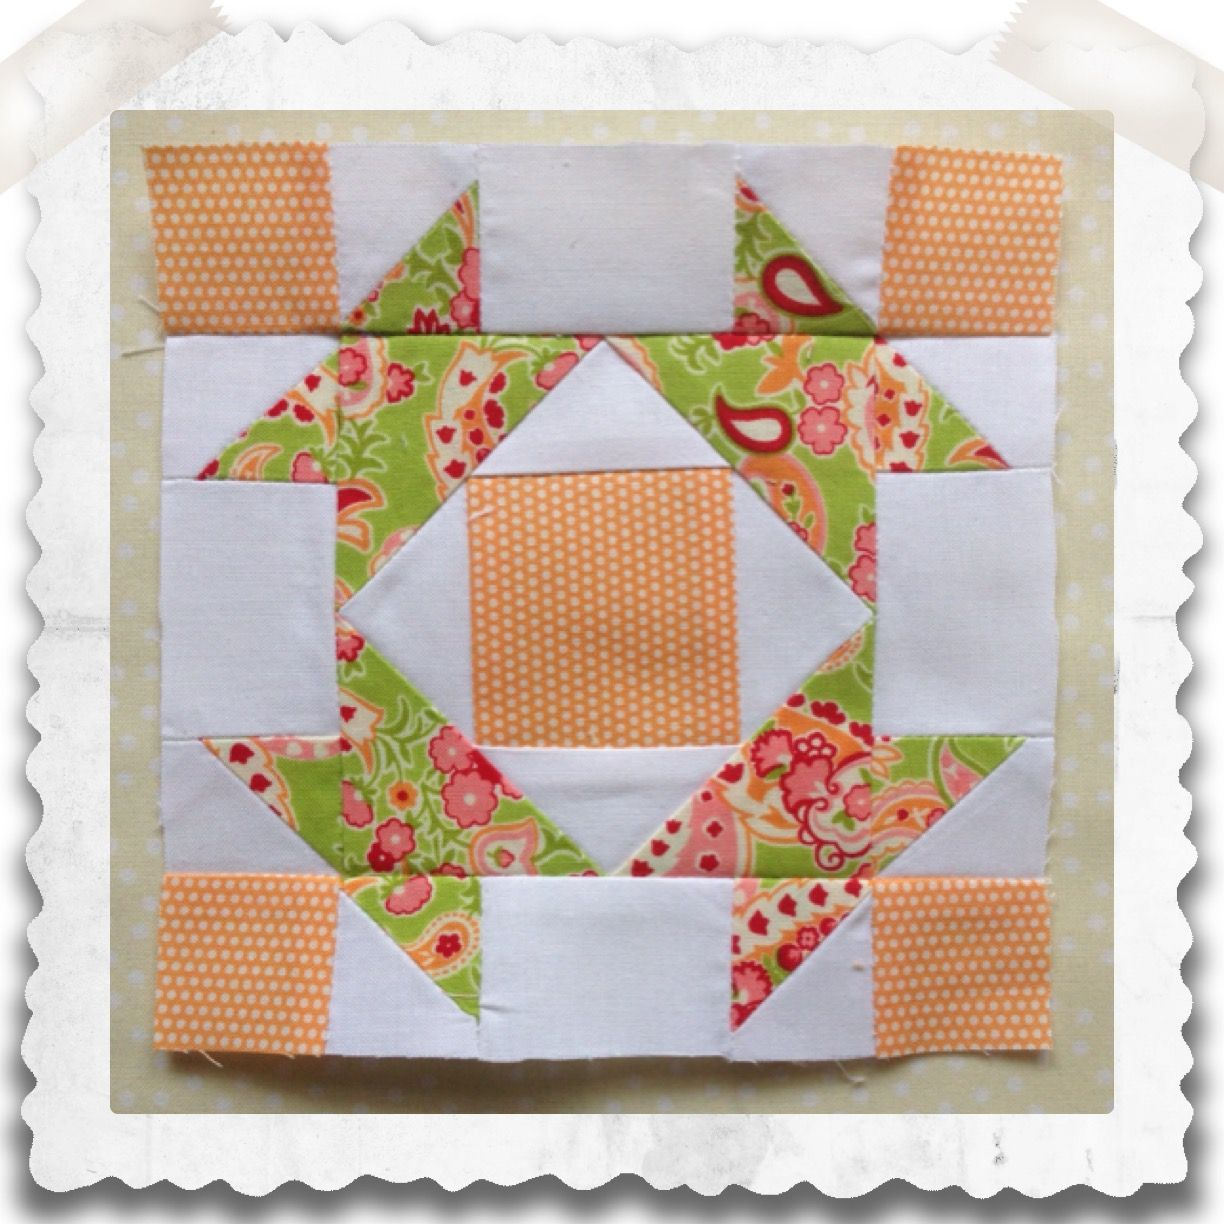 Broken Dishes Block Free Pattern | Chatelaine Sampler Quilt by ... : sampler quilt blocks free - Adamdwight.com